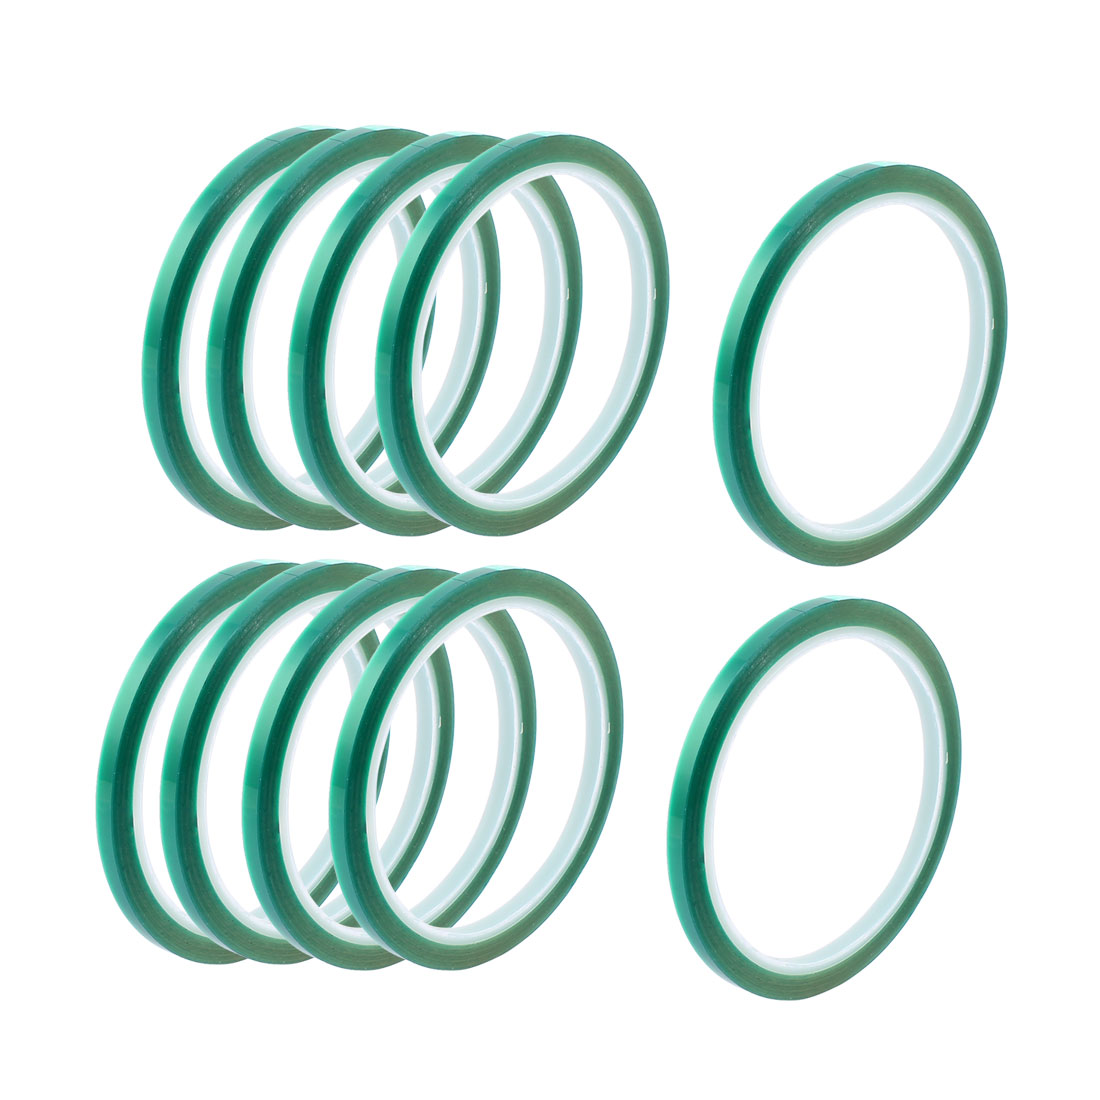 10pcs 5mm Width 33M Long Green PET High Temperature Heat Resistant PCB Solder Tape